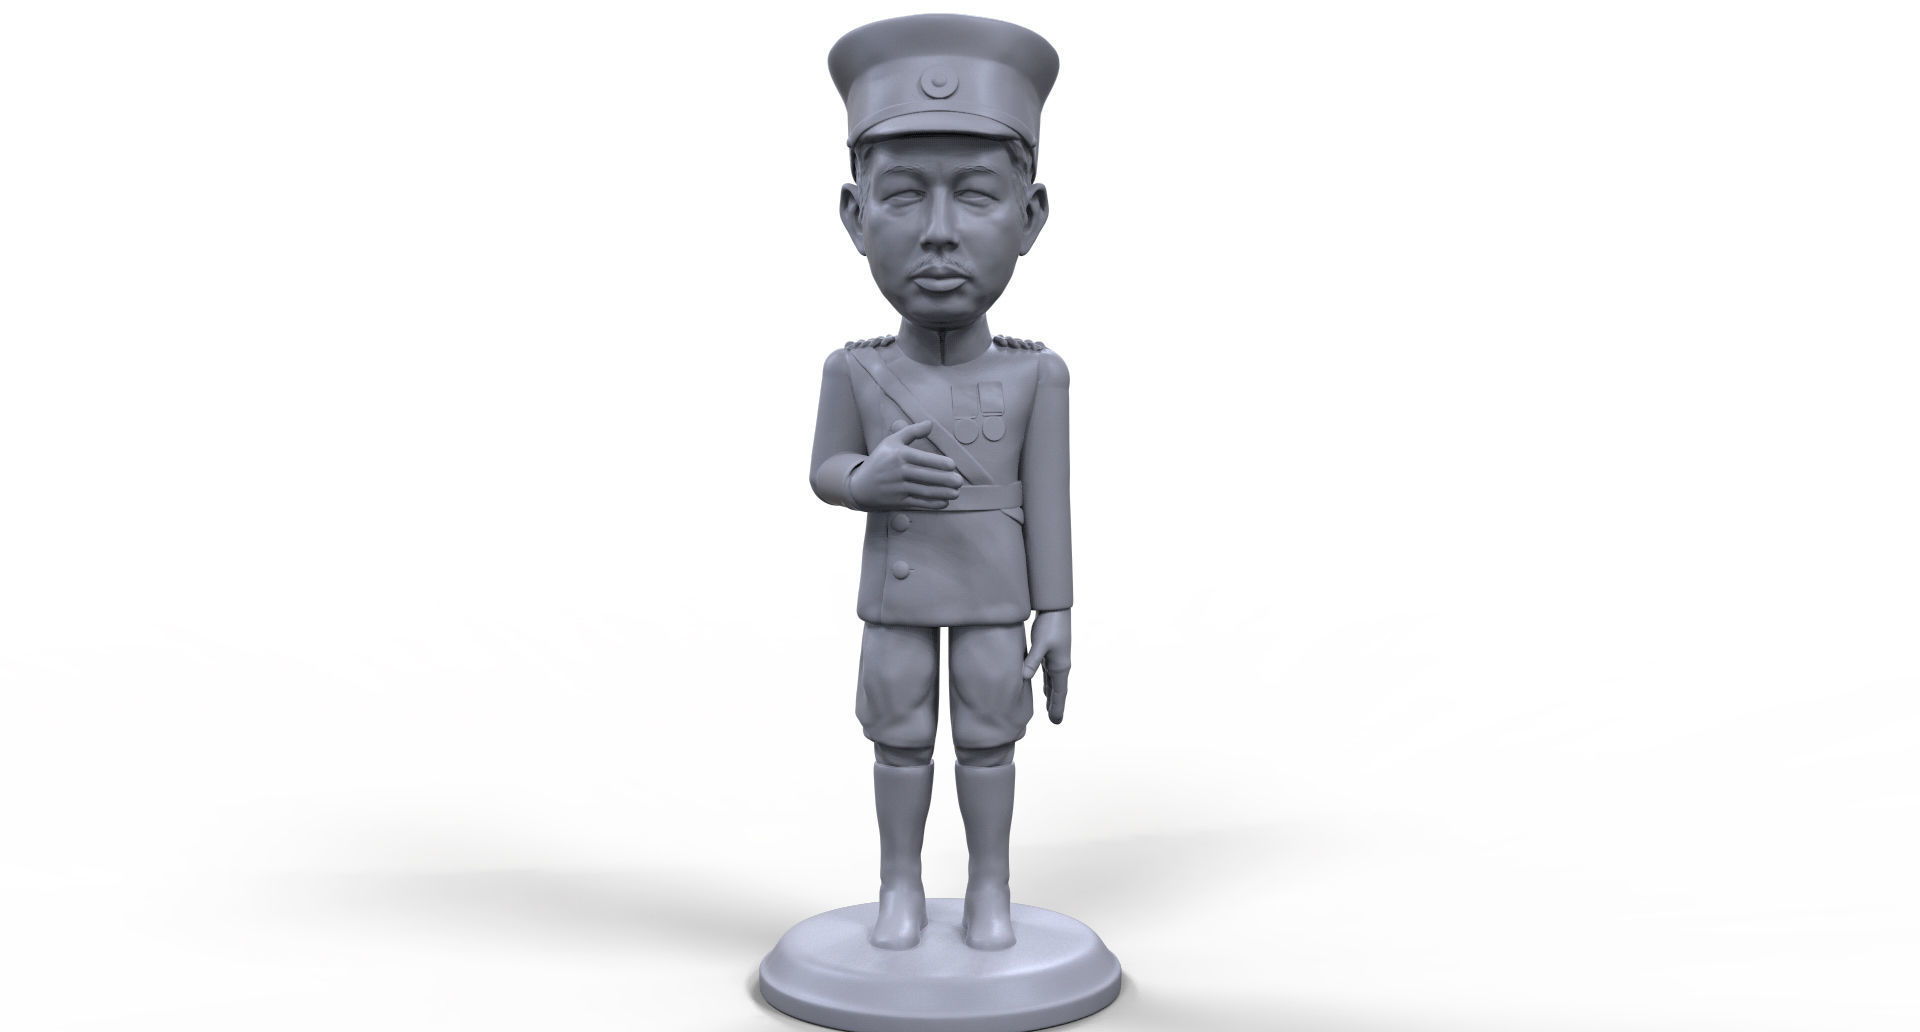 Emperor Hirohito stylized high quality 3D printable miniature